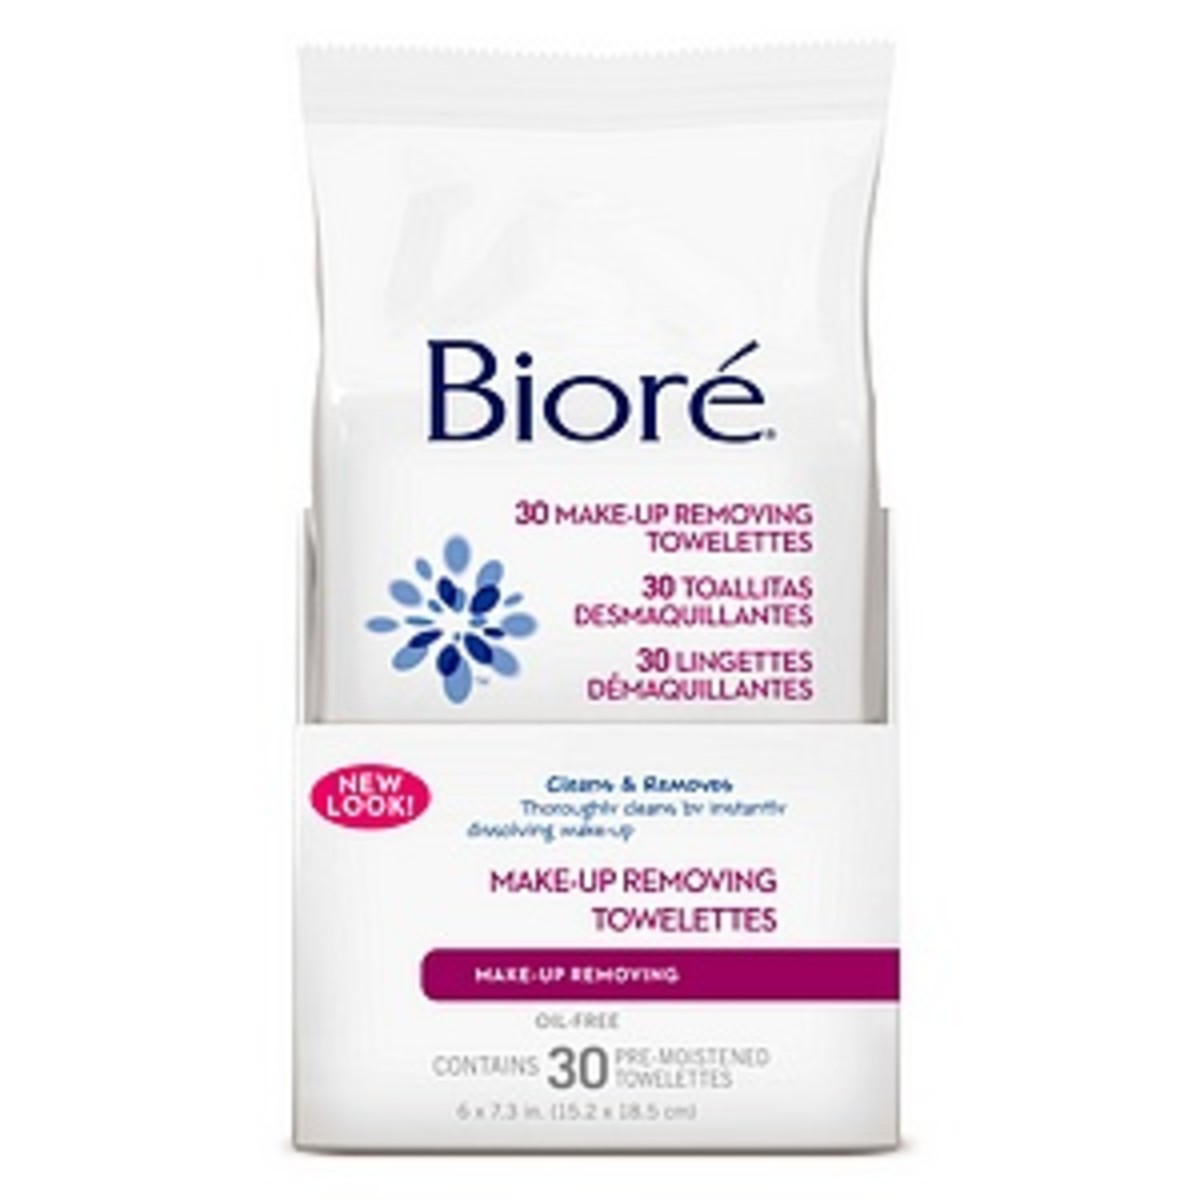 Biore-Make-Up-Removing-Towelettes